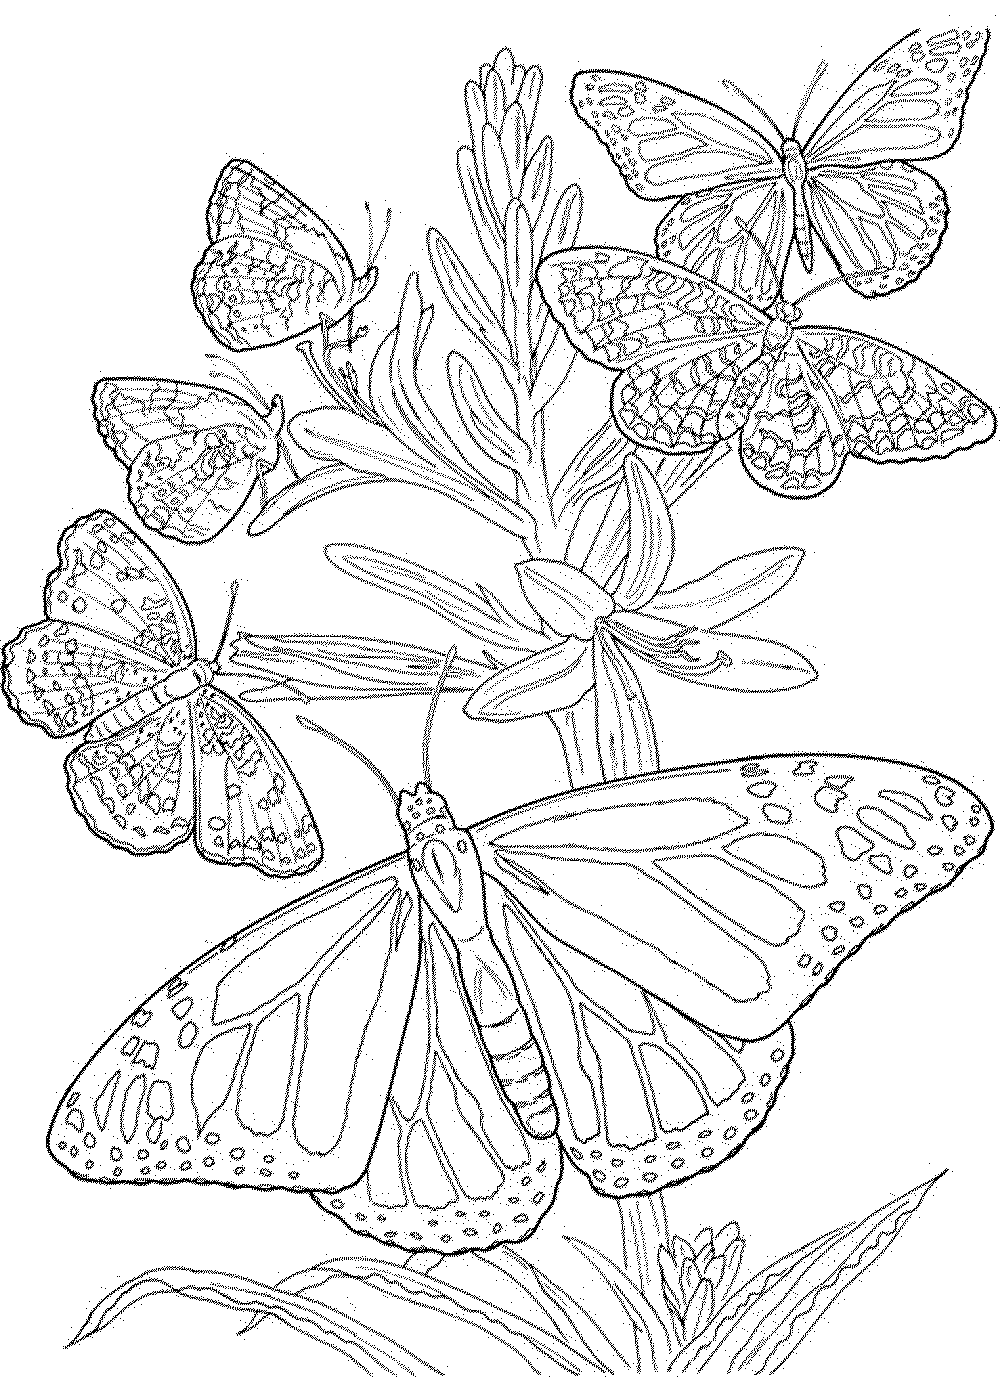 Free printable coloring pages for grown ups - Coloring Book Pages For Adults Printable Kids Colouring Pages